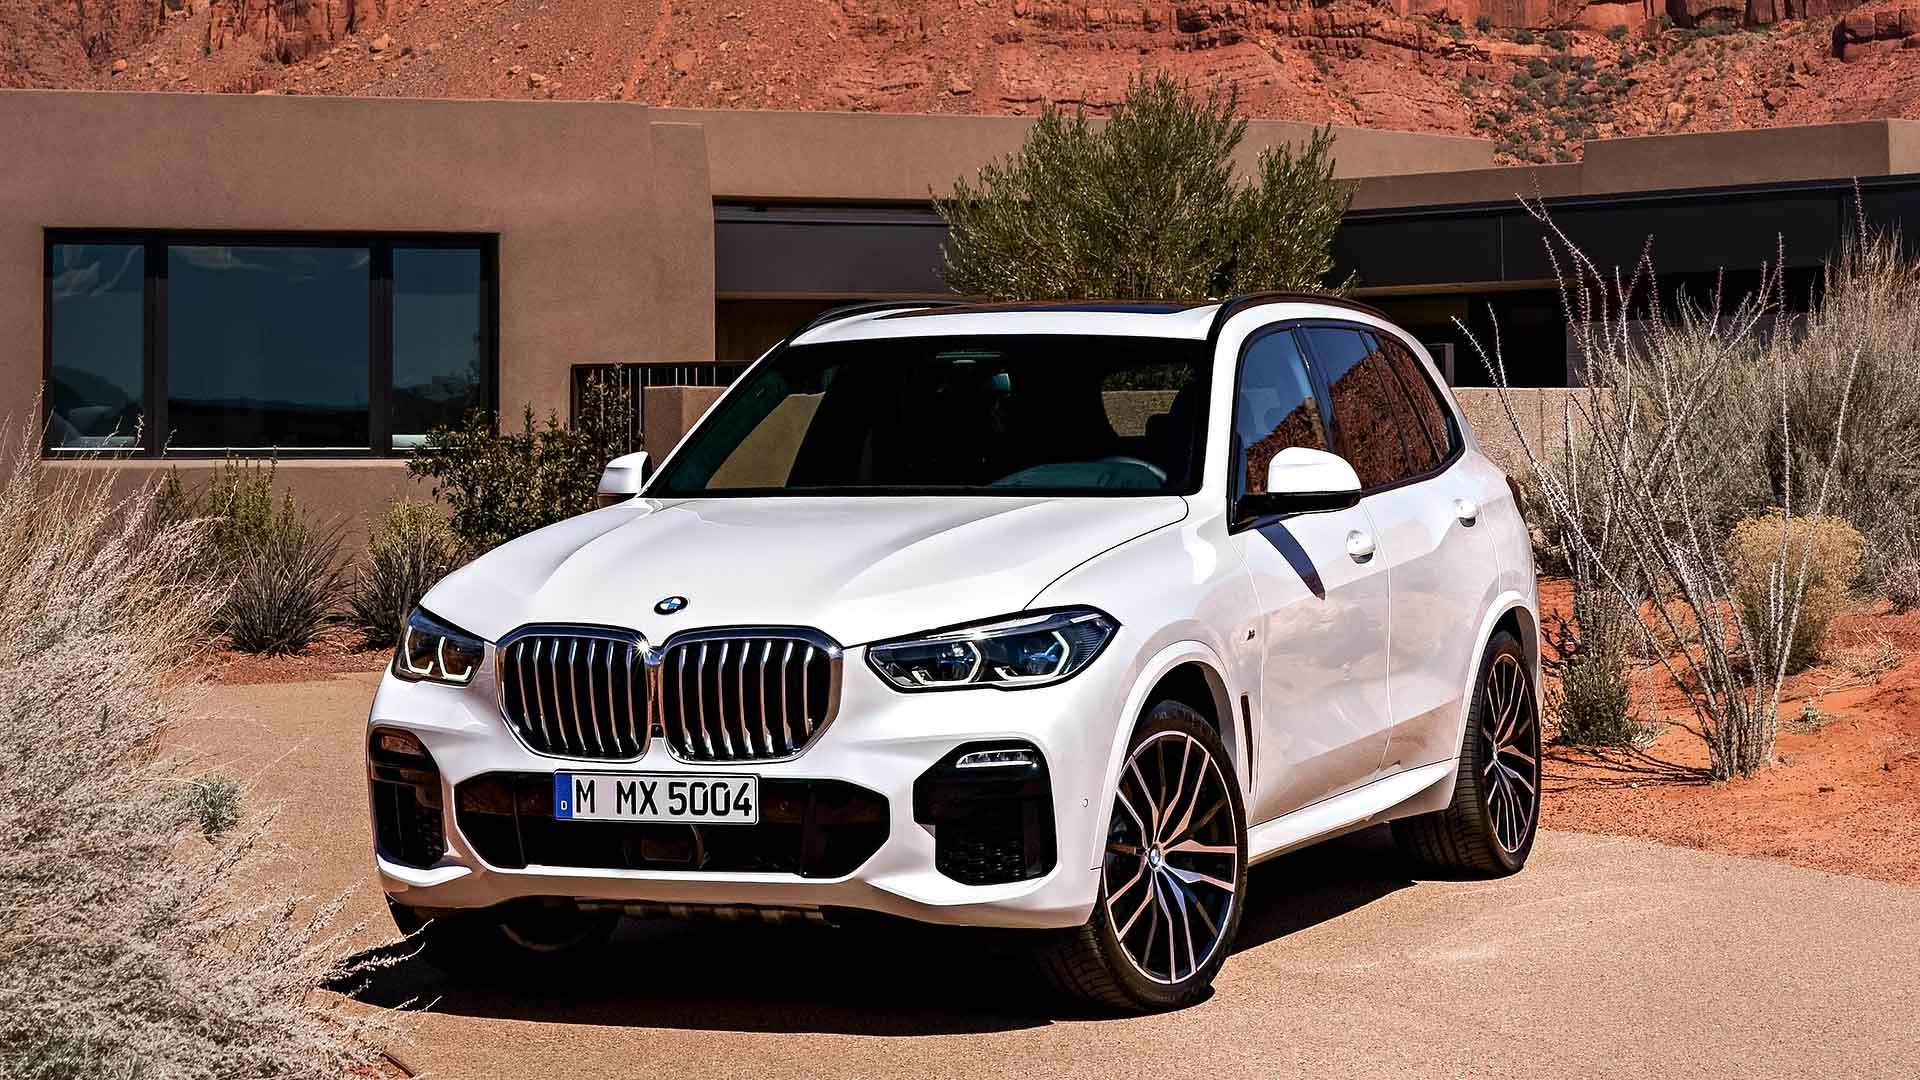 2019 Bmw X5 Debuts With Familiar Look Lots Of Cutting Edge Tech